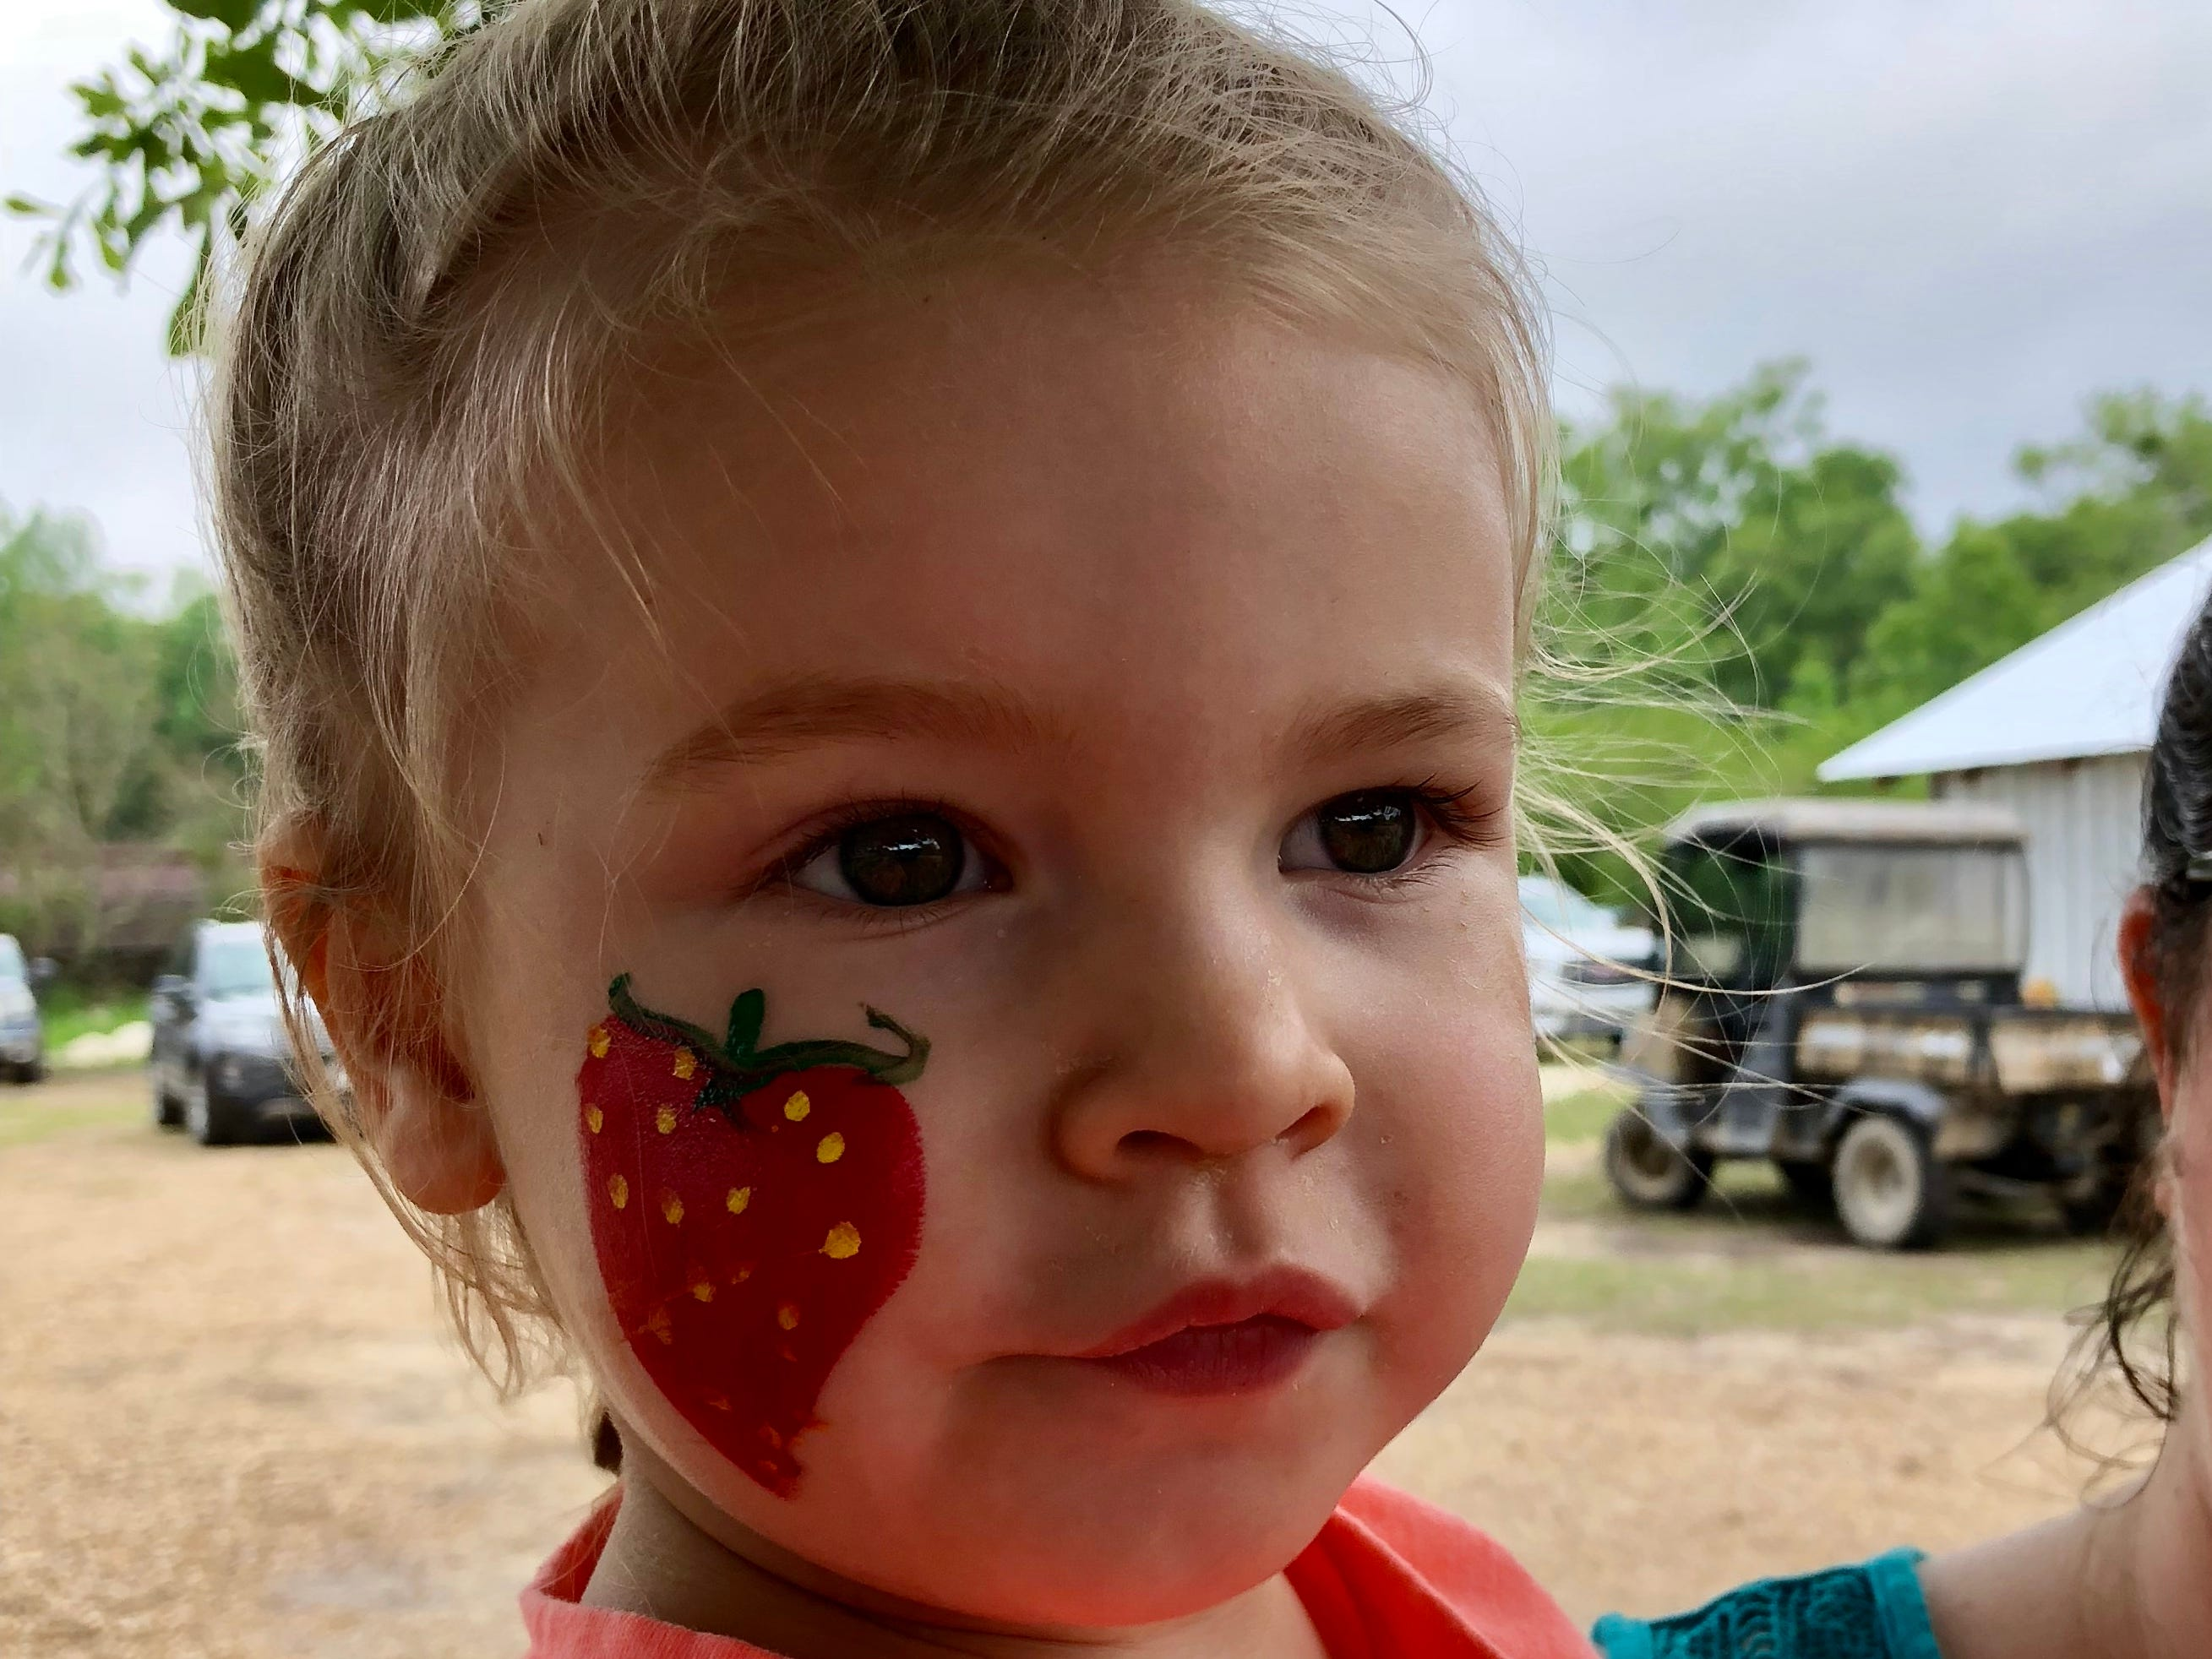 Marie Guidry has a strawberry painted on her face April 6 at Mrs. Heather's Strawberry Farm in Albany, Louisiana.